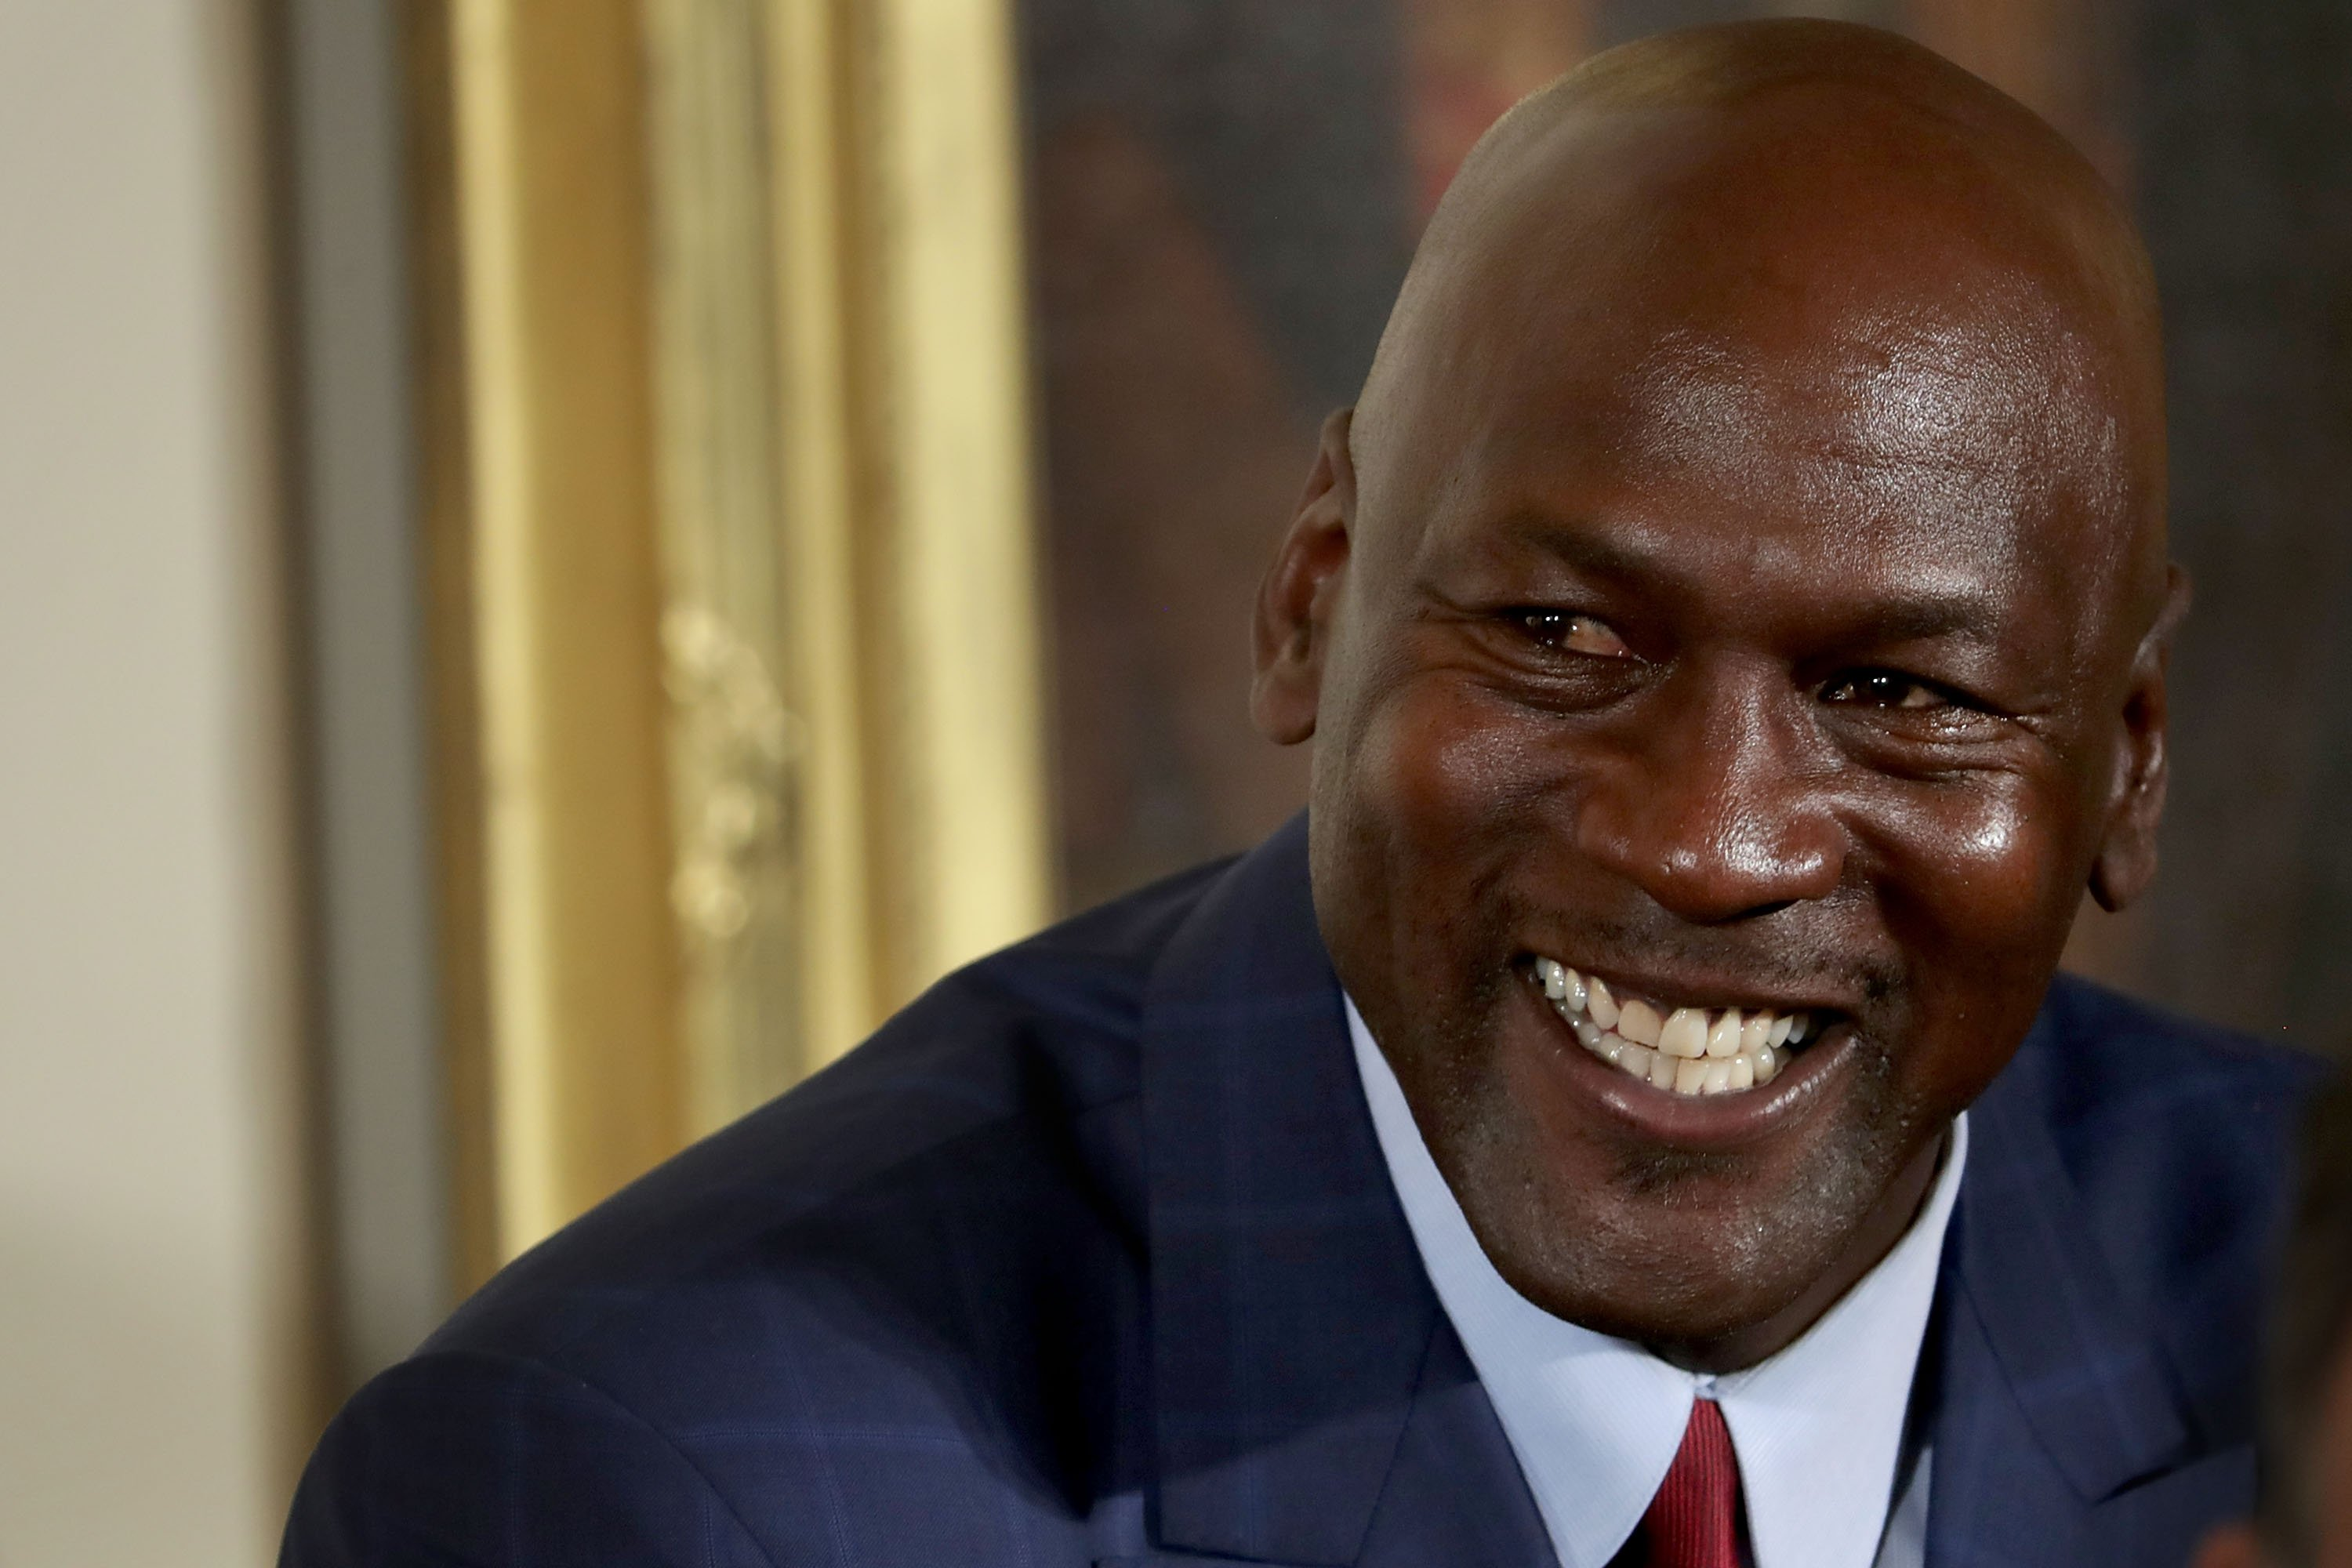 Michael Jordan before being awarded the Presidential Medal of Freedom by U.S. President Barack Obama on November 22, 2016. | Photo: GettyImages